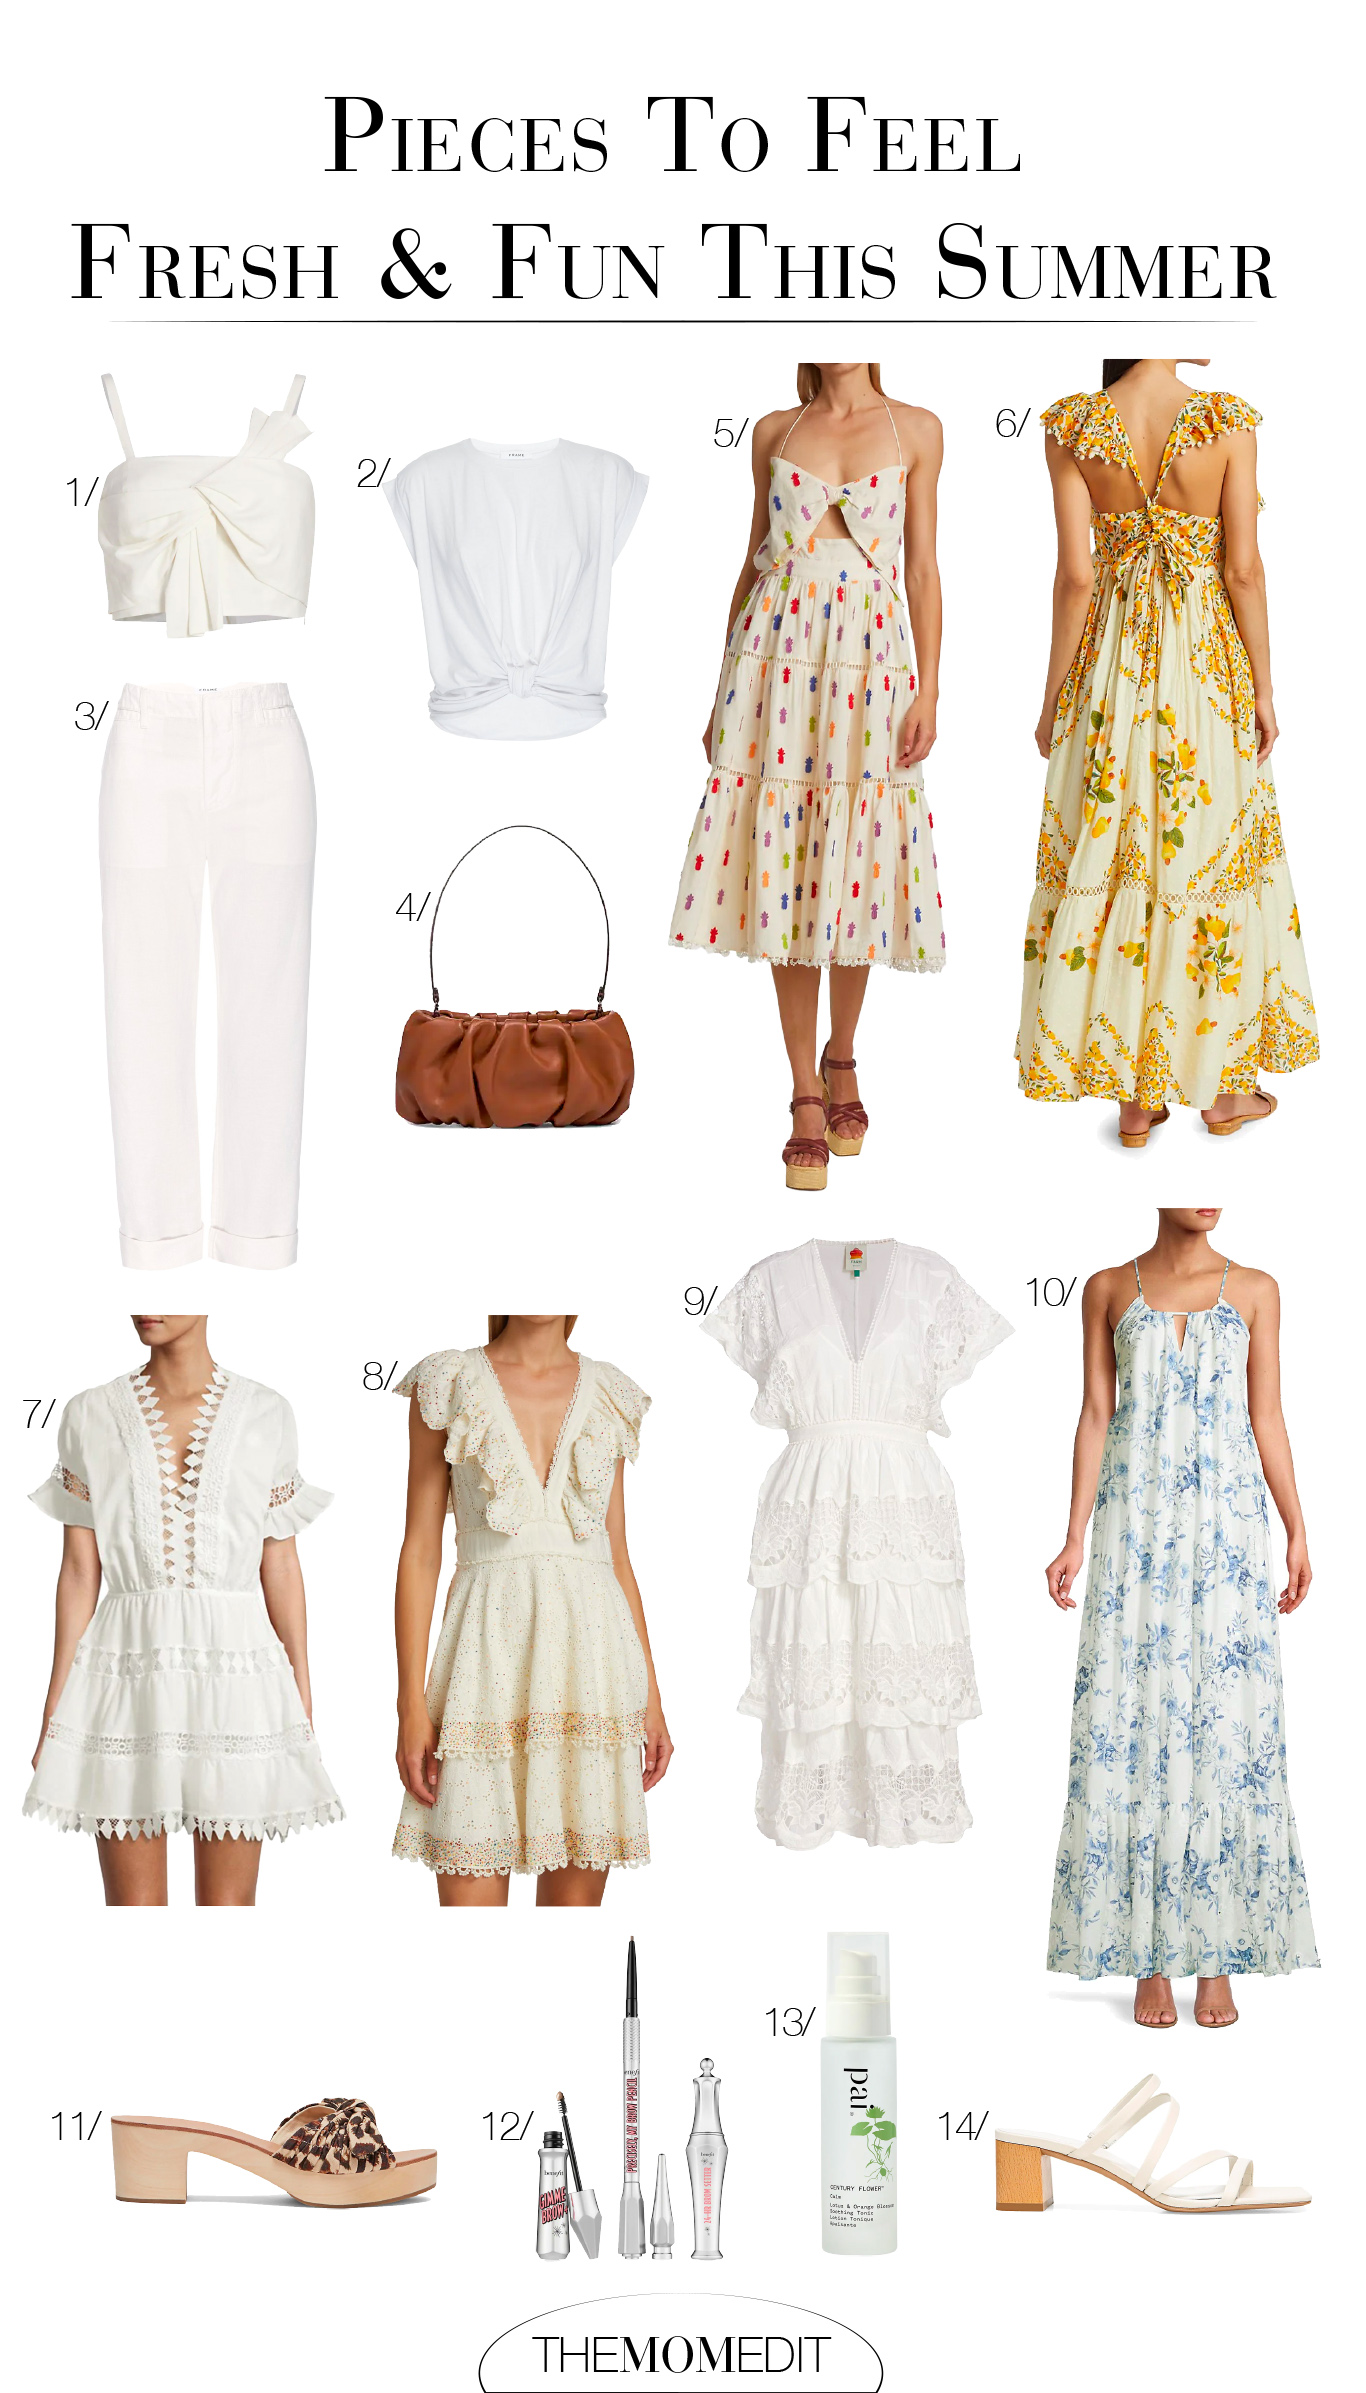 For summer, I gravitate to white clothing & breathable fabrics. Think: pretty ivory dresses, white trousers & classy tops in cotton + linen.